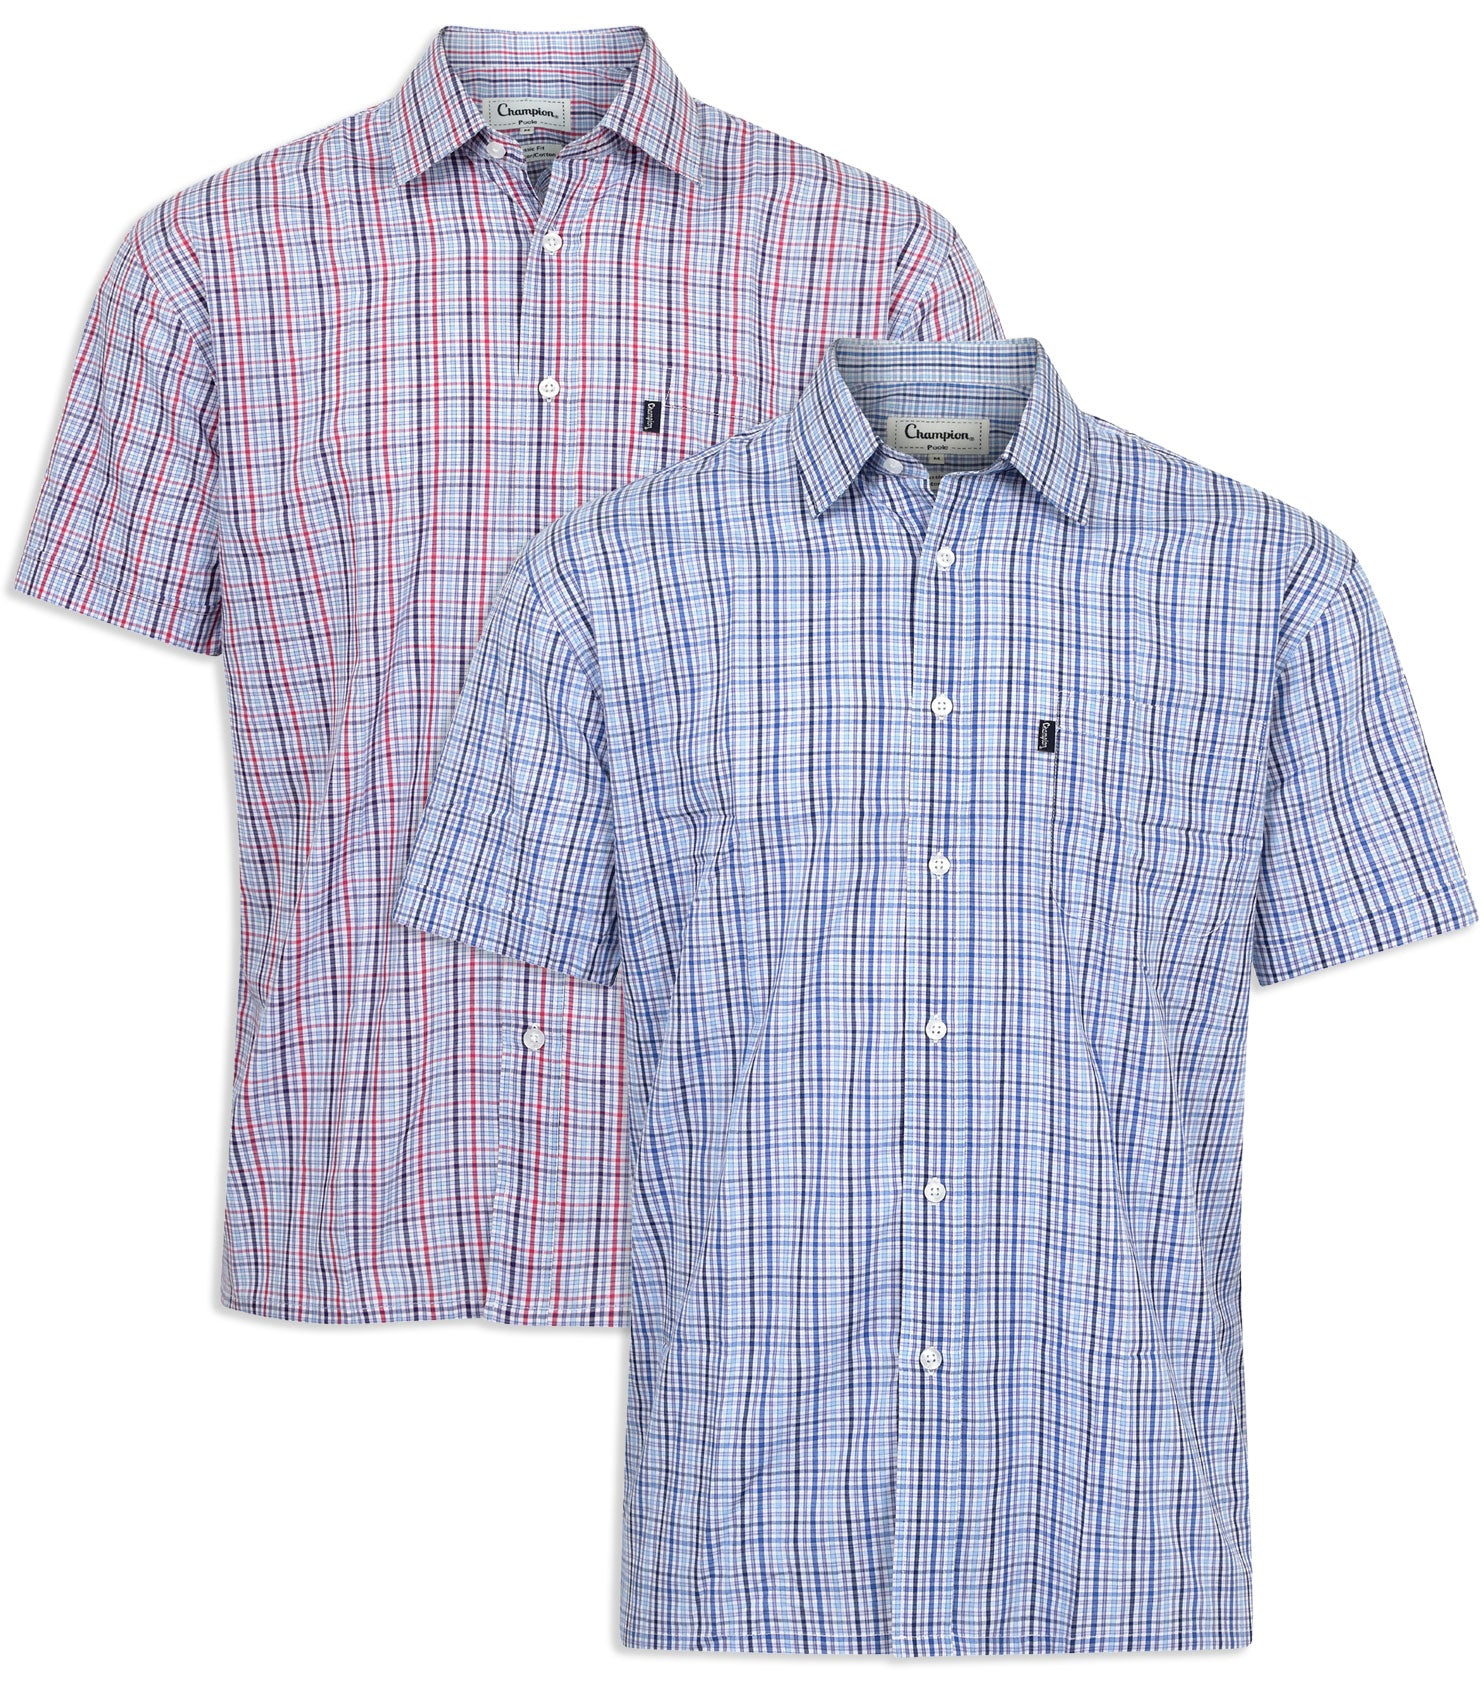 Champion Poole Short Sleeve Shirt in Red Or Blue